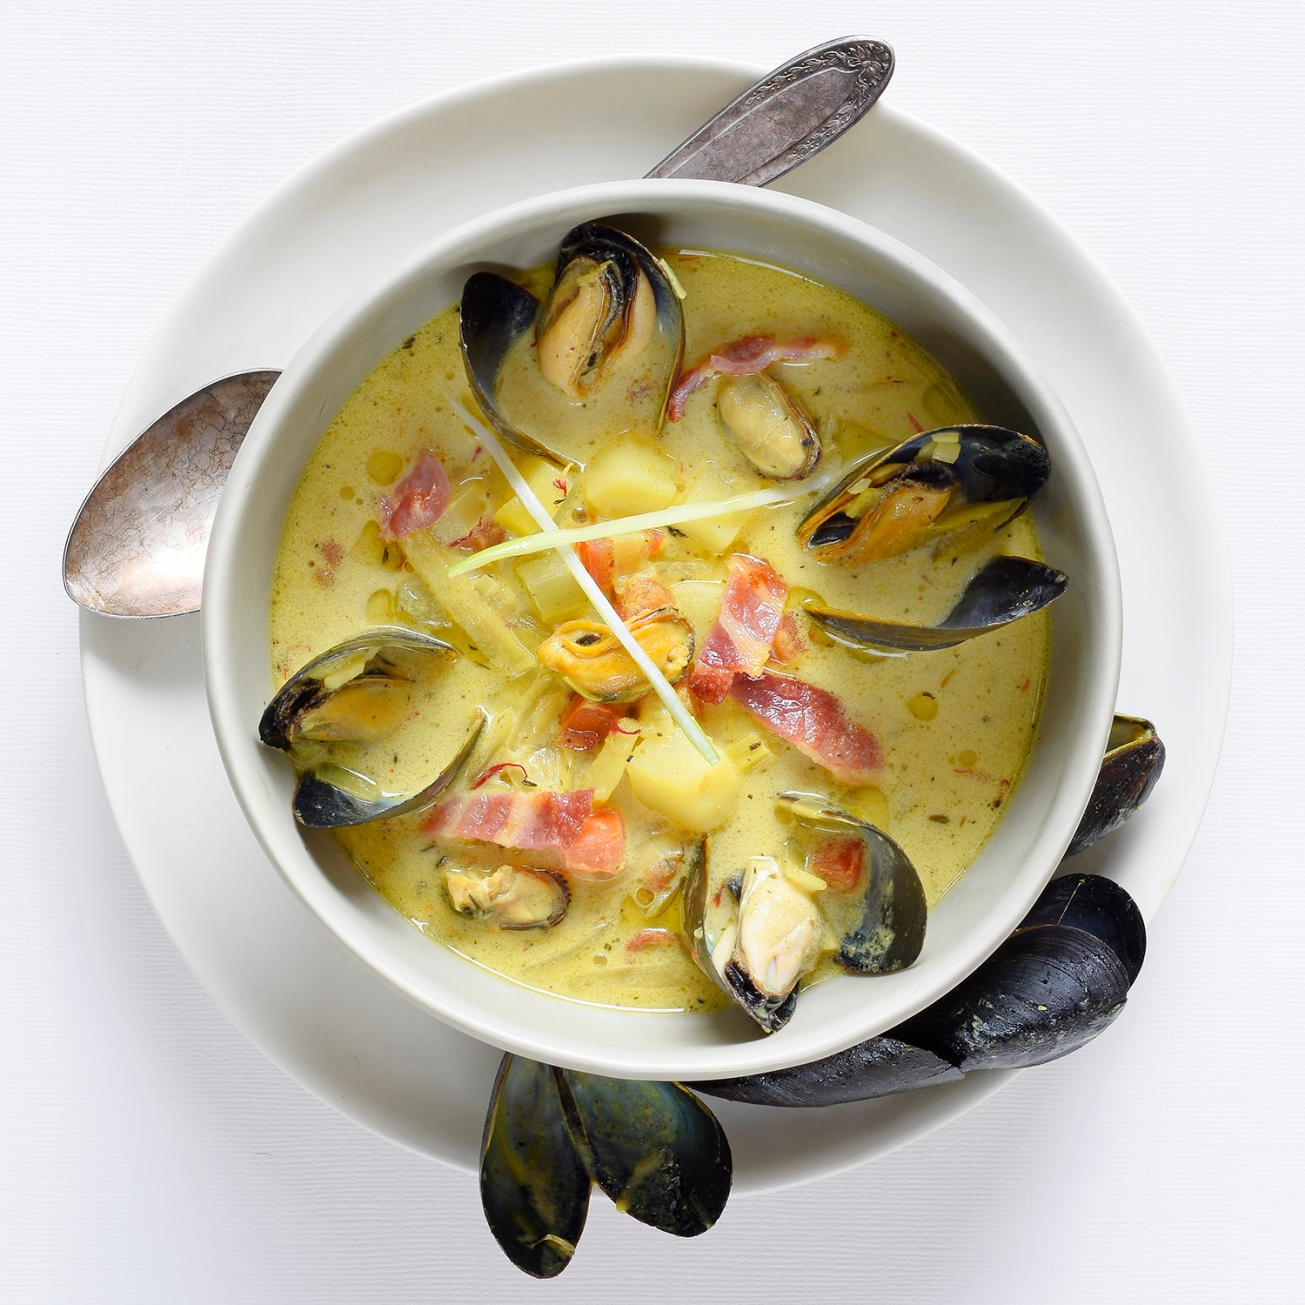 Golden Mussel Chowder with PEI Mussels and Saffron, from Malouf. |